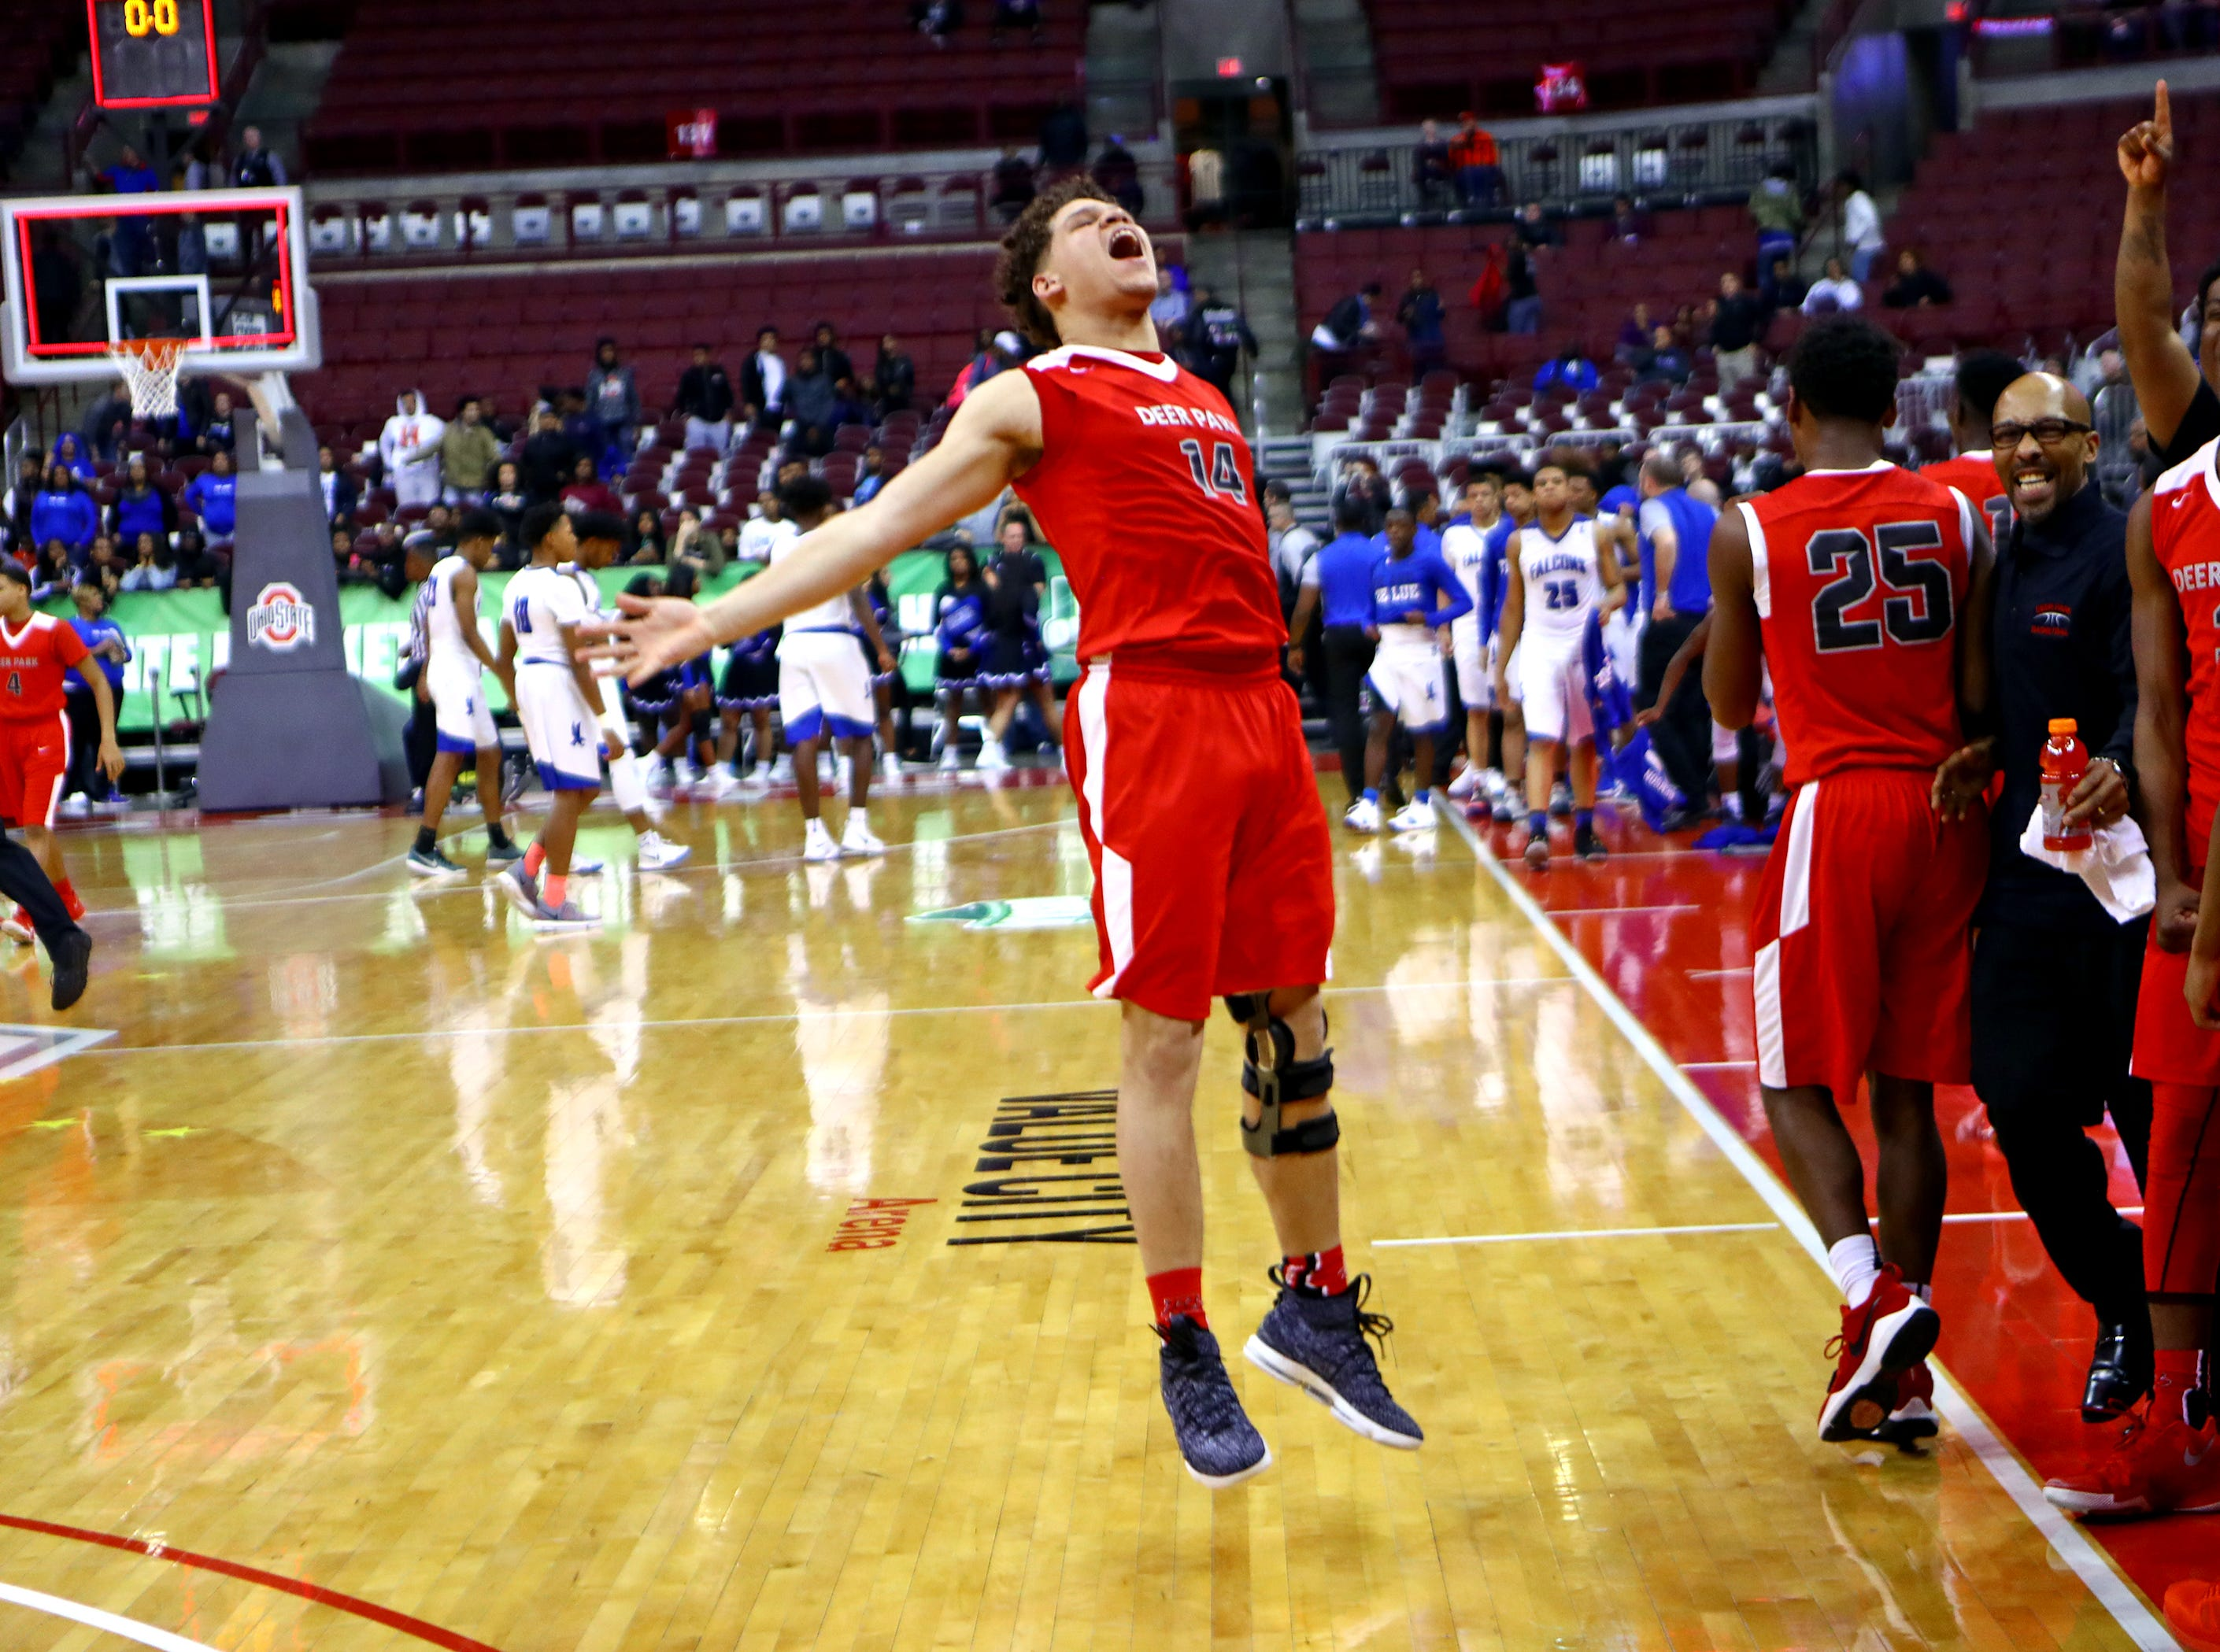 Deer Park center Joseph Hocker celebrates as the clock runs out. Deer Park defeated Cleveland Lutheran East 66-48 and moves on to the Championship game Saturday.